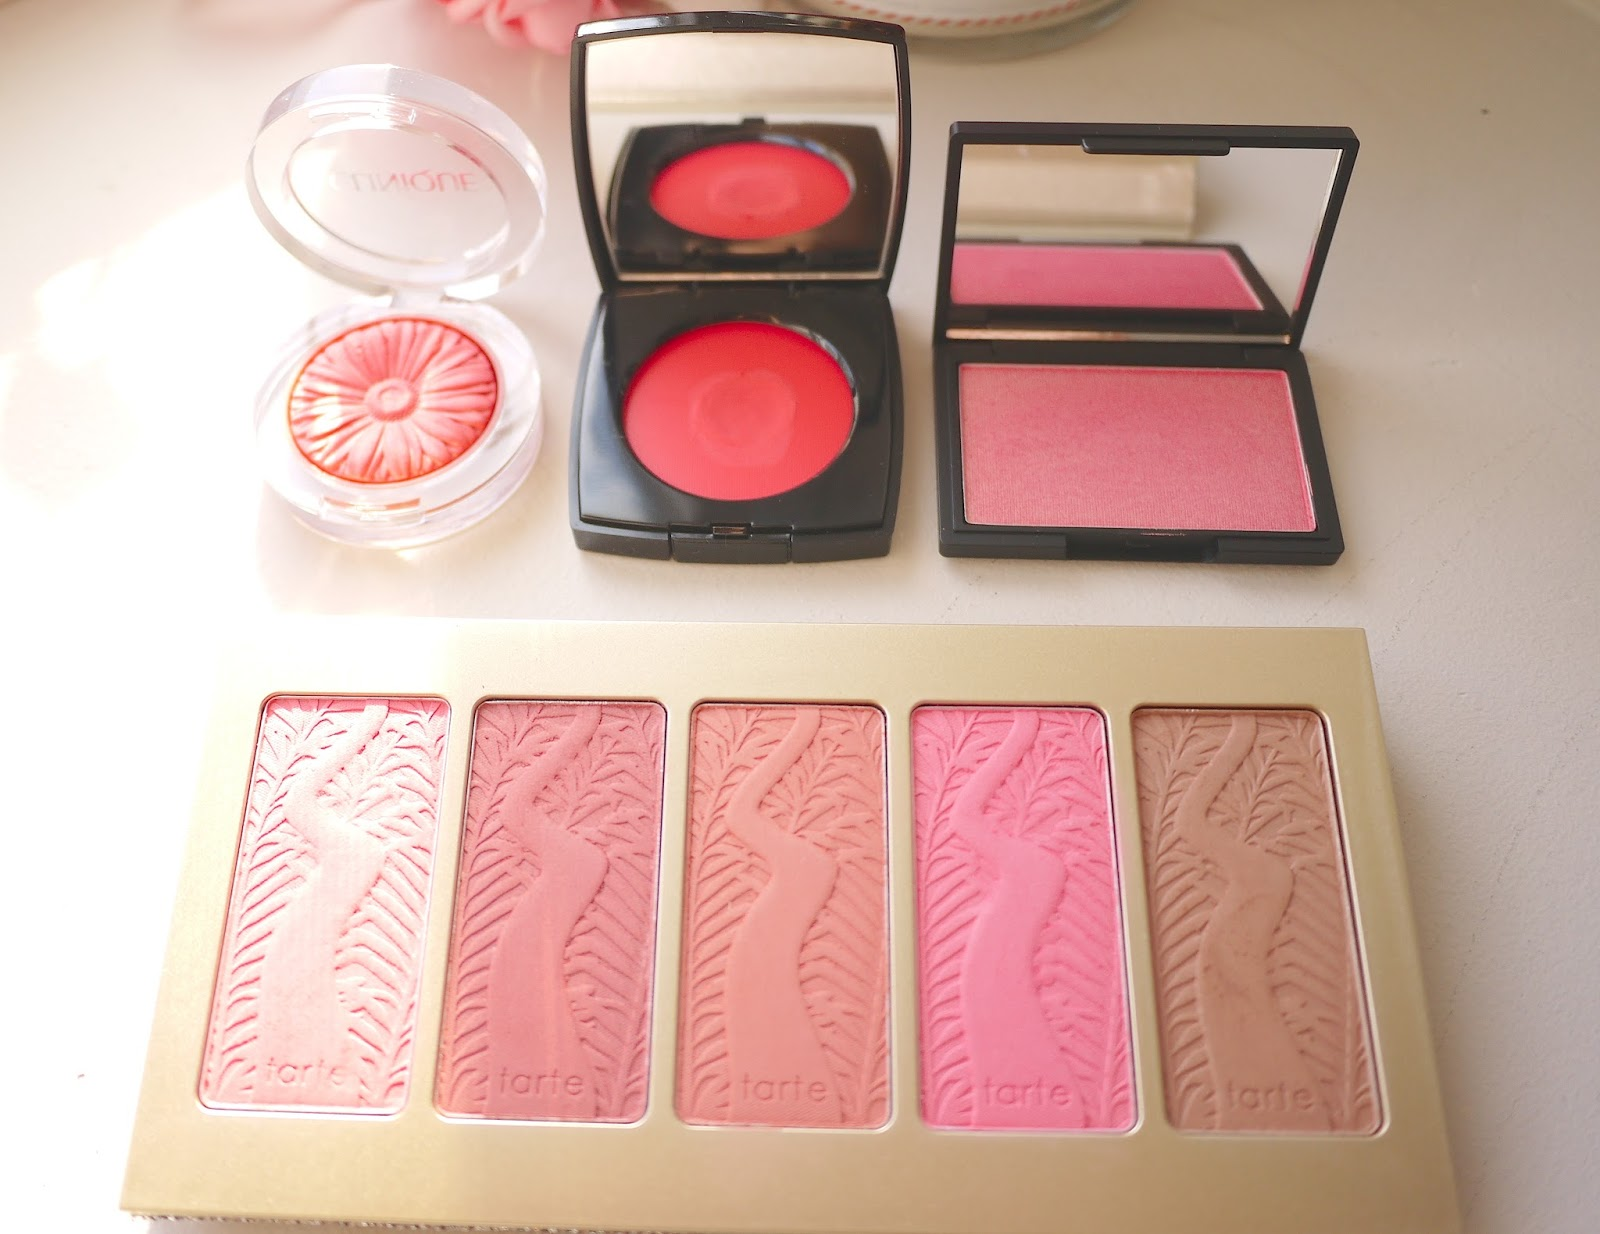 sleek rose gold blush, tarte off the cuff palette, chanel intonation blush, clinique peach pop blush swatches